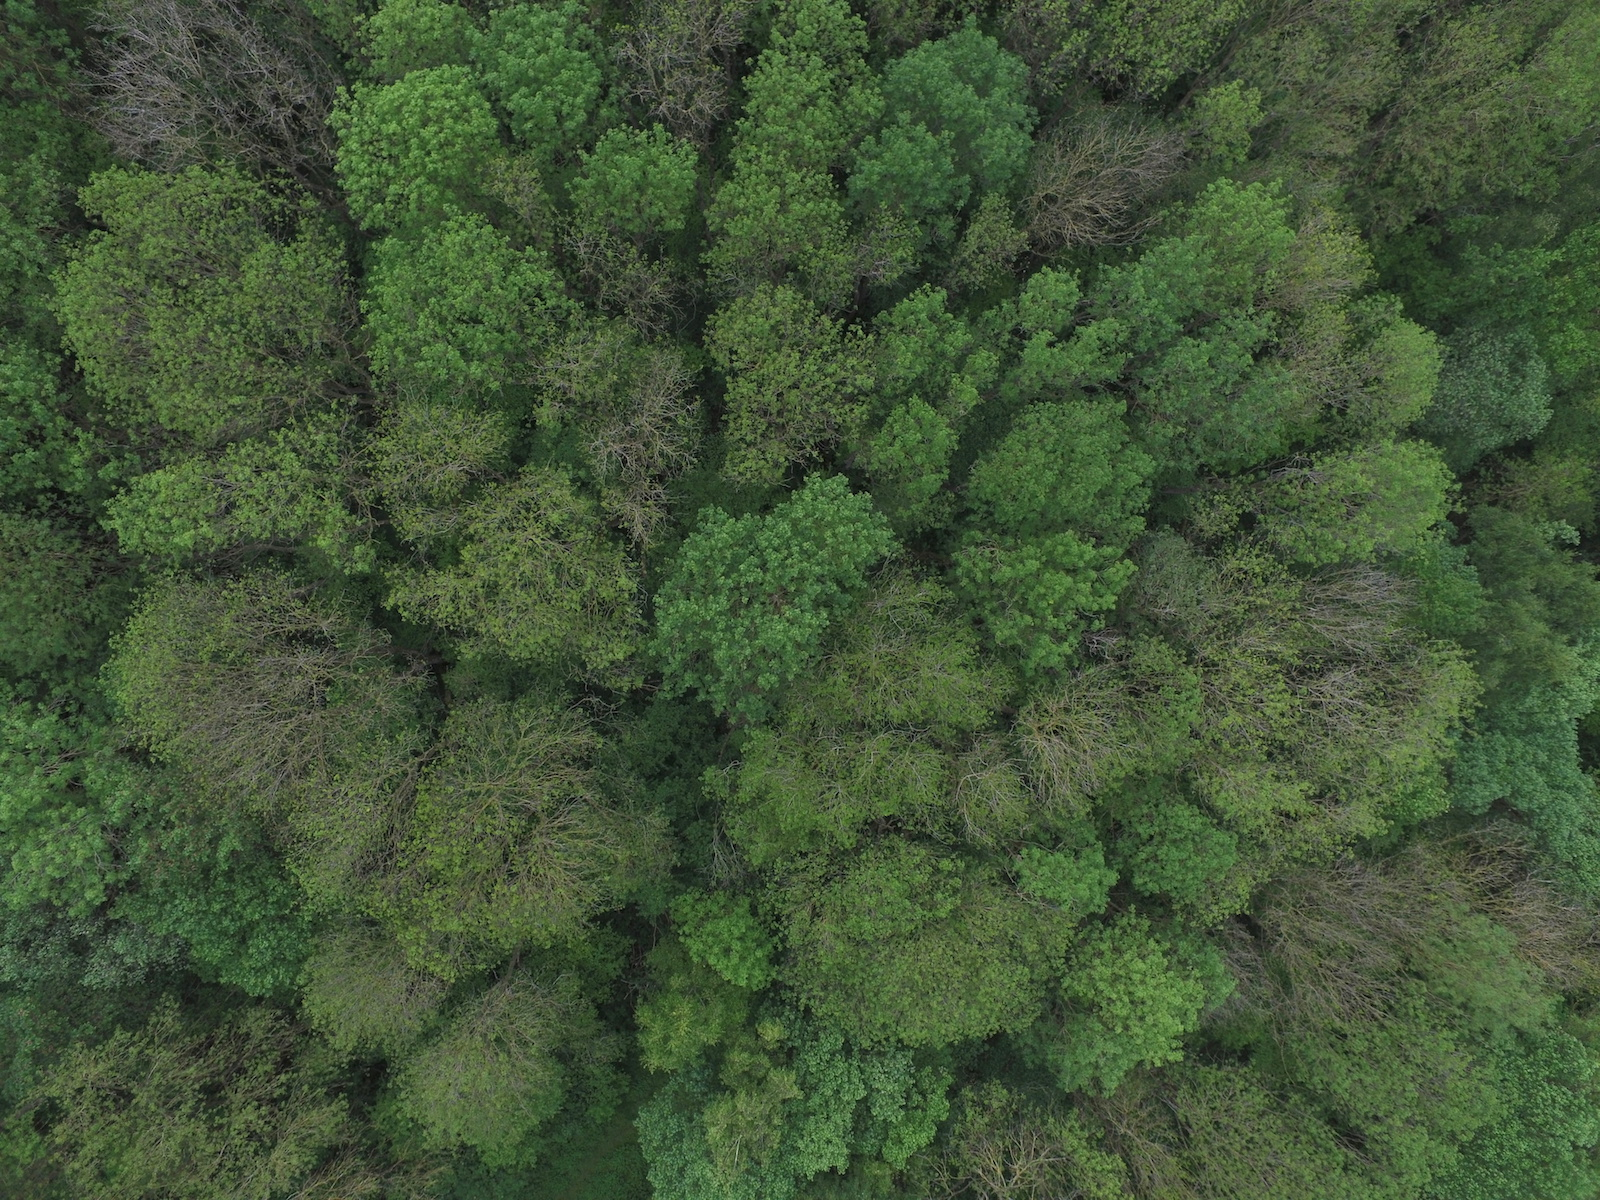 Aerial Imagery - Trees